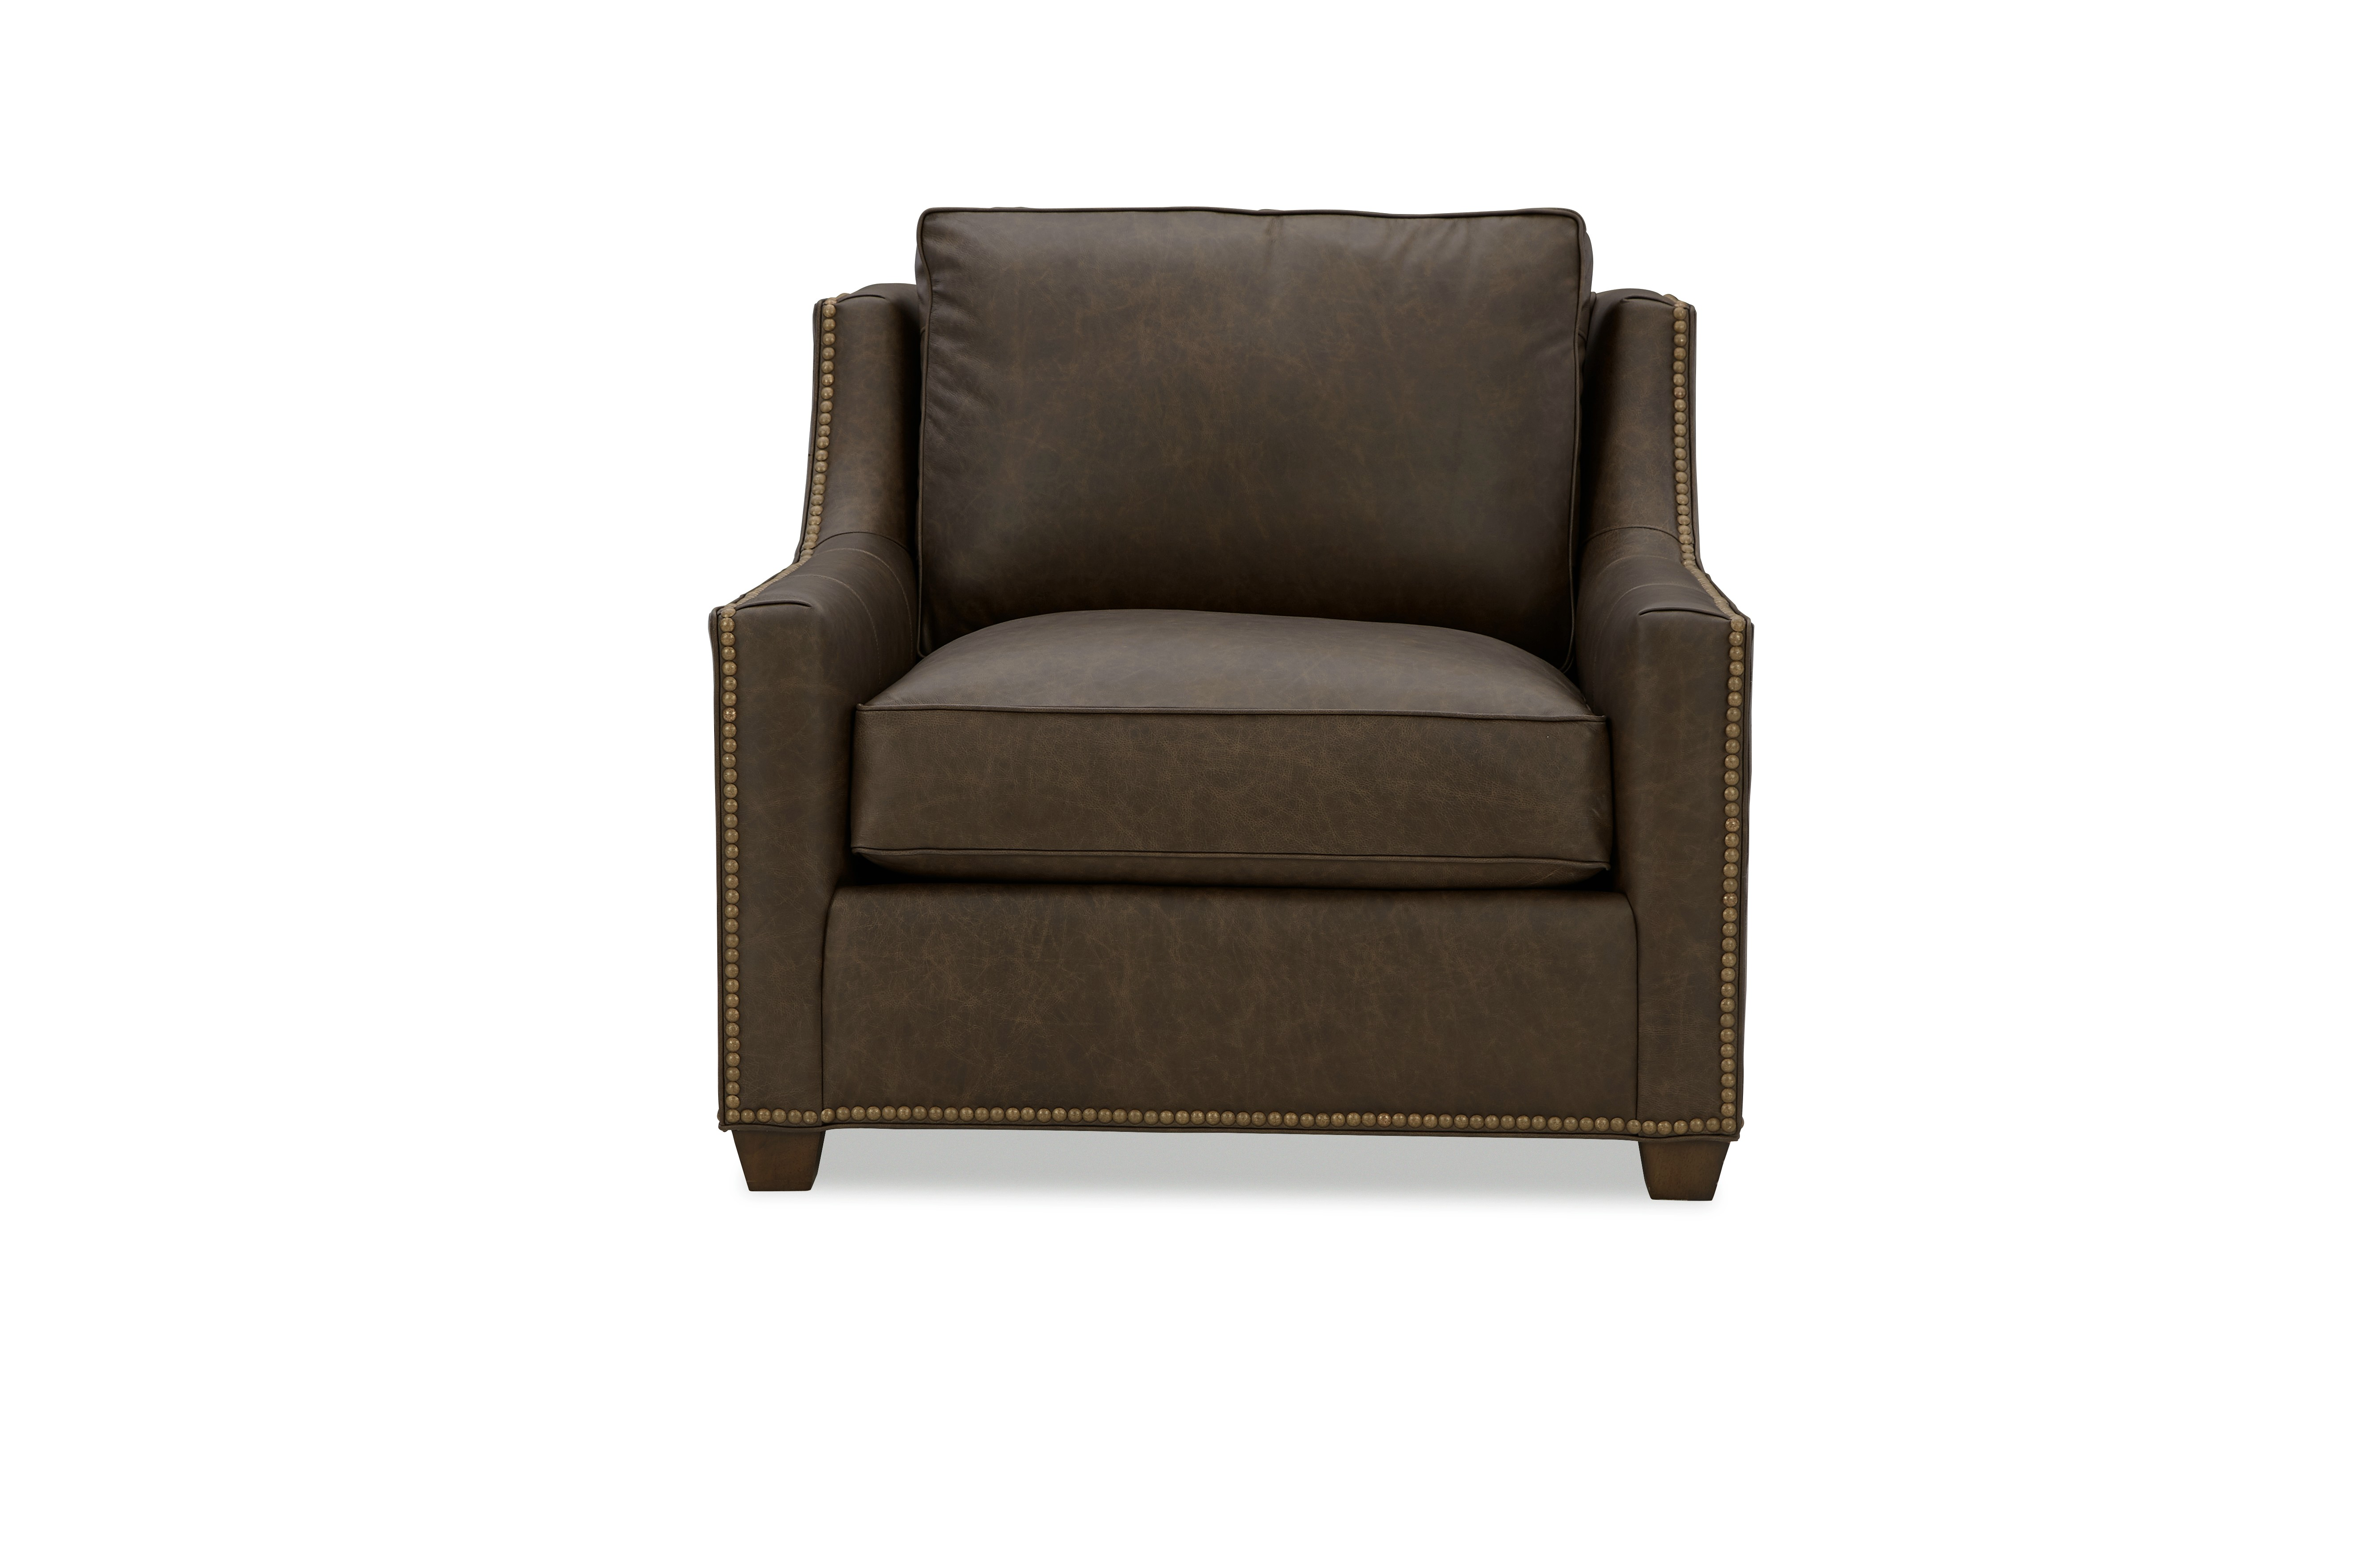 L702950BD Chair by Craftmaster at Powell's Furniture and Mattress